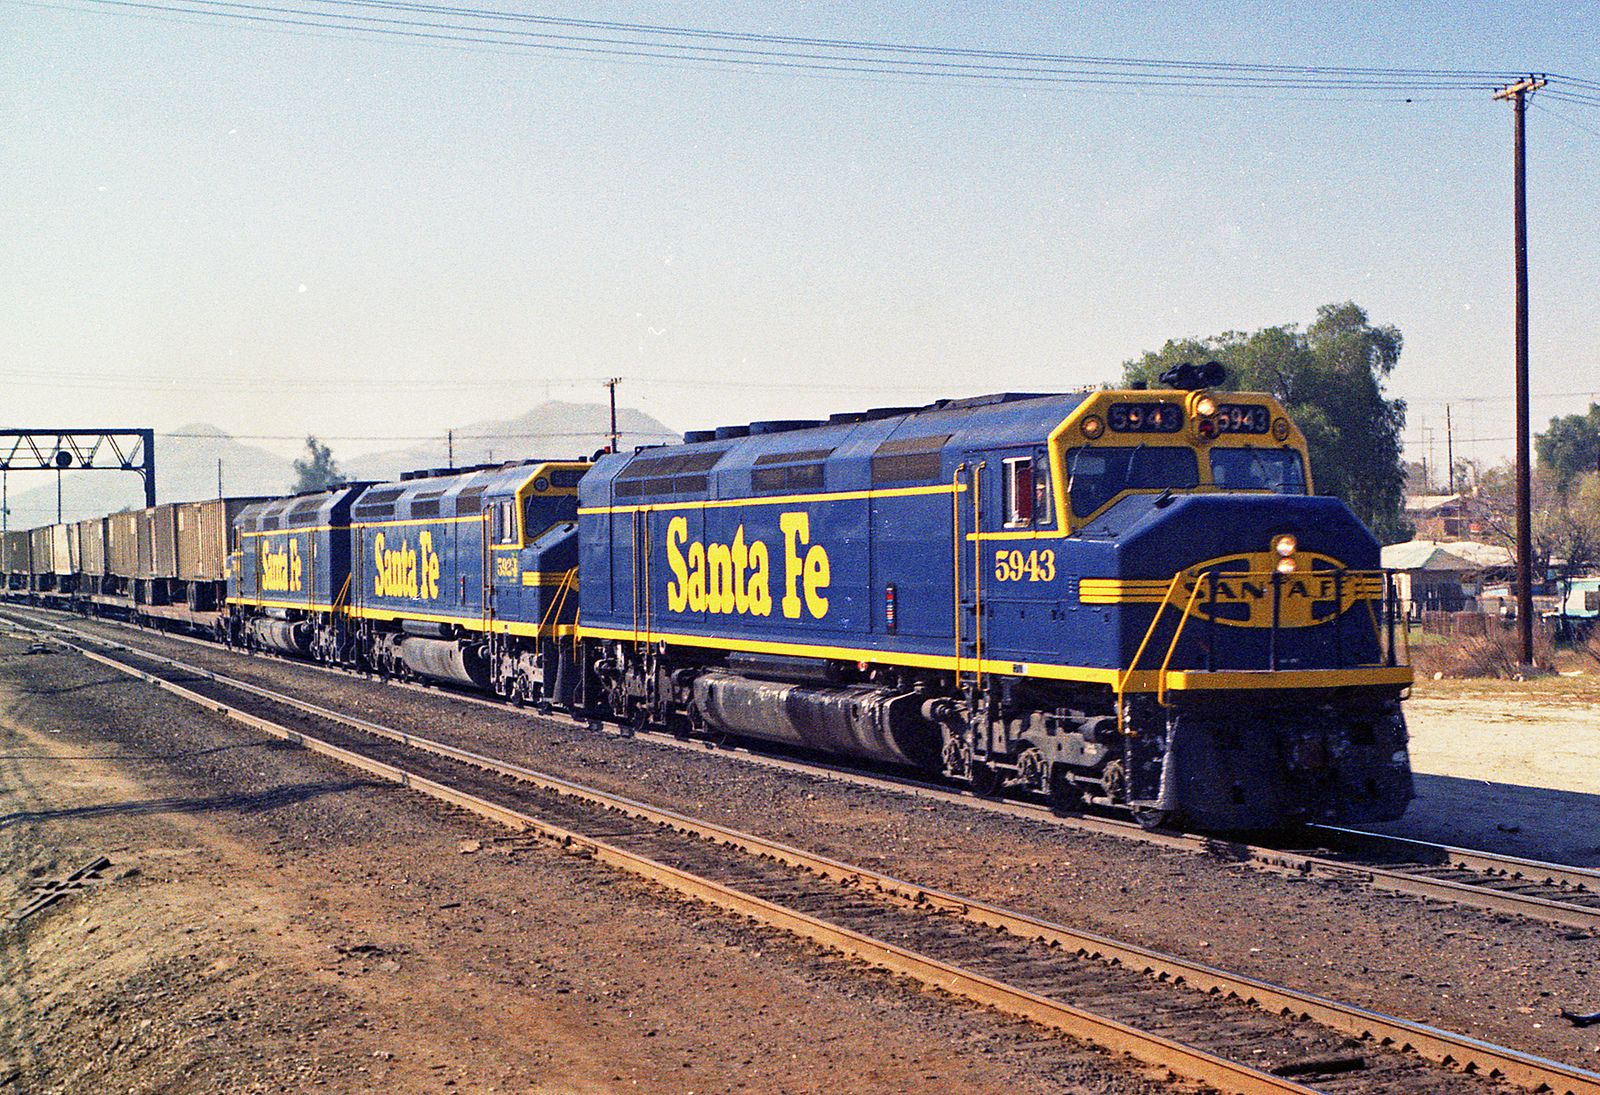 https://flic.kr/p/cP7m8s | Better Blue Than Yellow Bonnet | Santa Fe's eastbound 198 train, the Super C, is about to hammer the diamonds at Colton, CA on Sunday, Feb. 27, 1972. Repainted FP45 5943, leads an F45 and another repainted FP45 in this view shot on Ektacolor film.